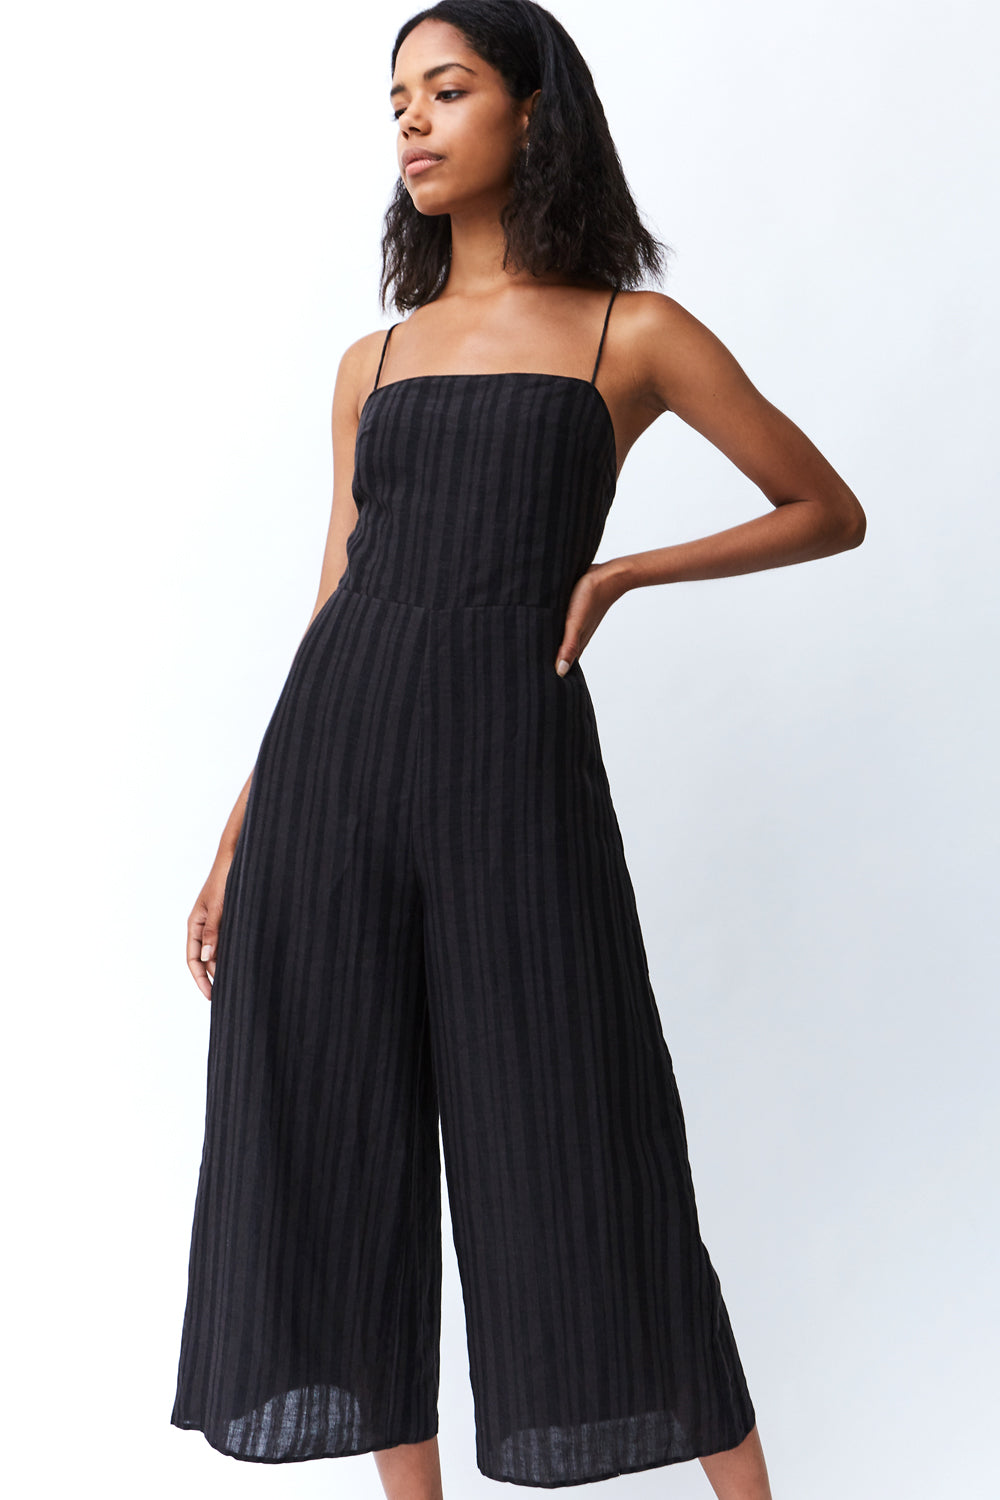 SENRO TIE BACK LINEN JUMPSUIT | CHARCOAL STRIPE